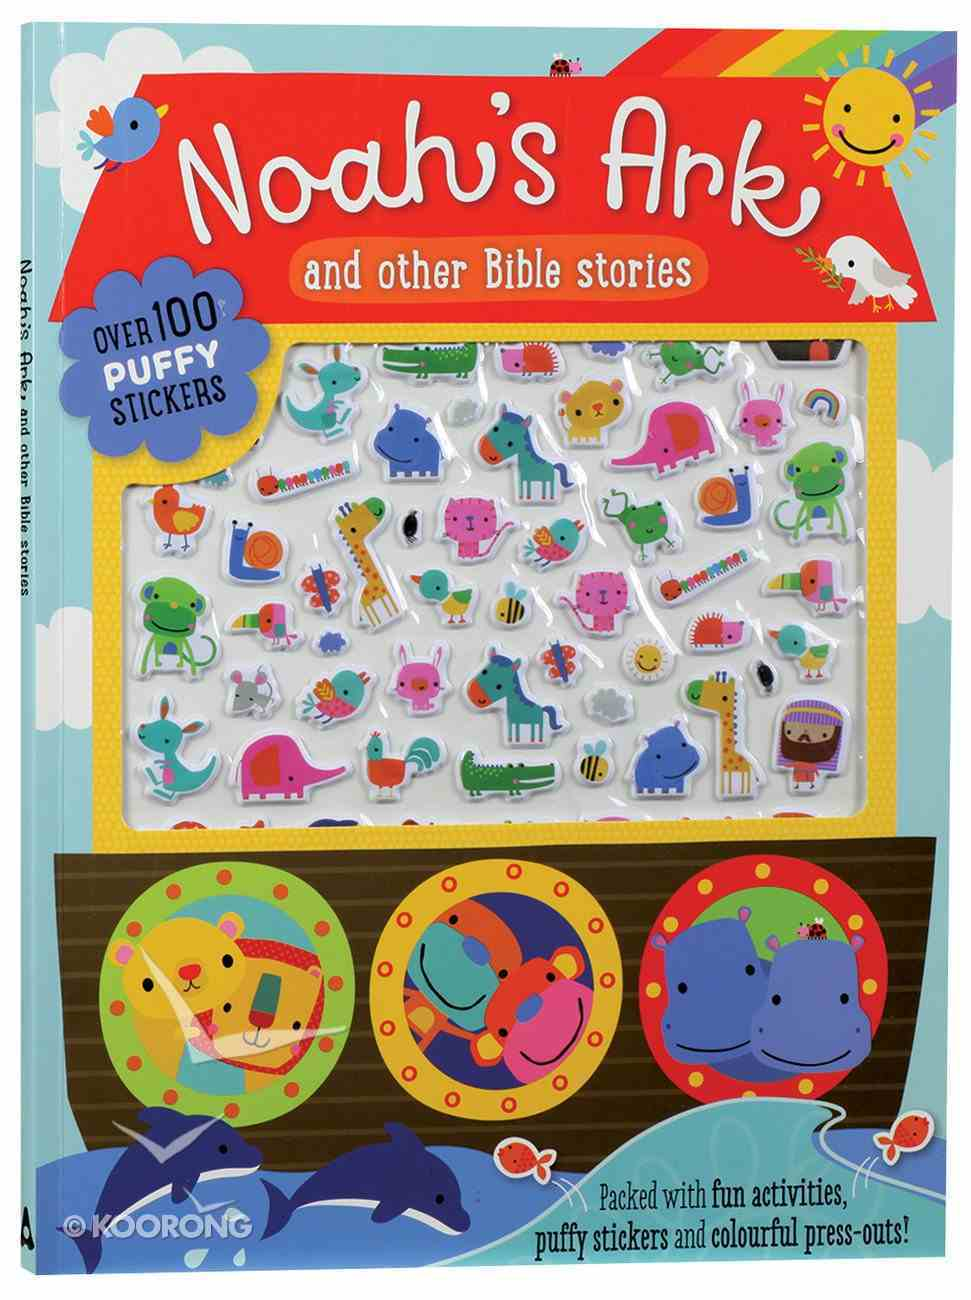 Noah's Ark & Other Bible Stories (With Over 100 Puffy Stickers) Paperback